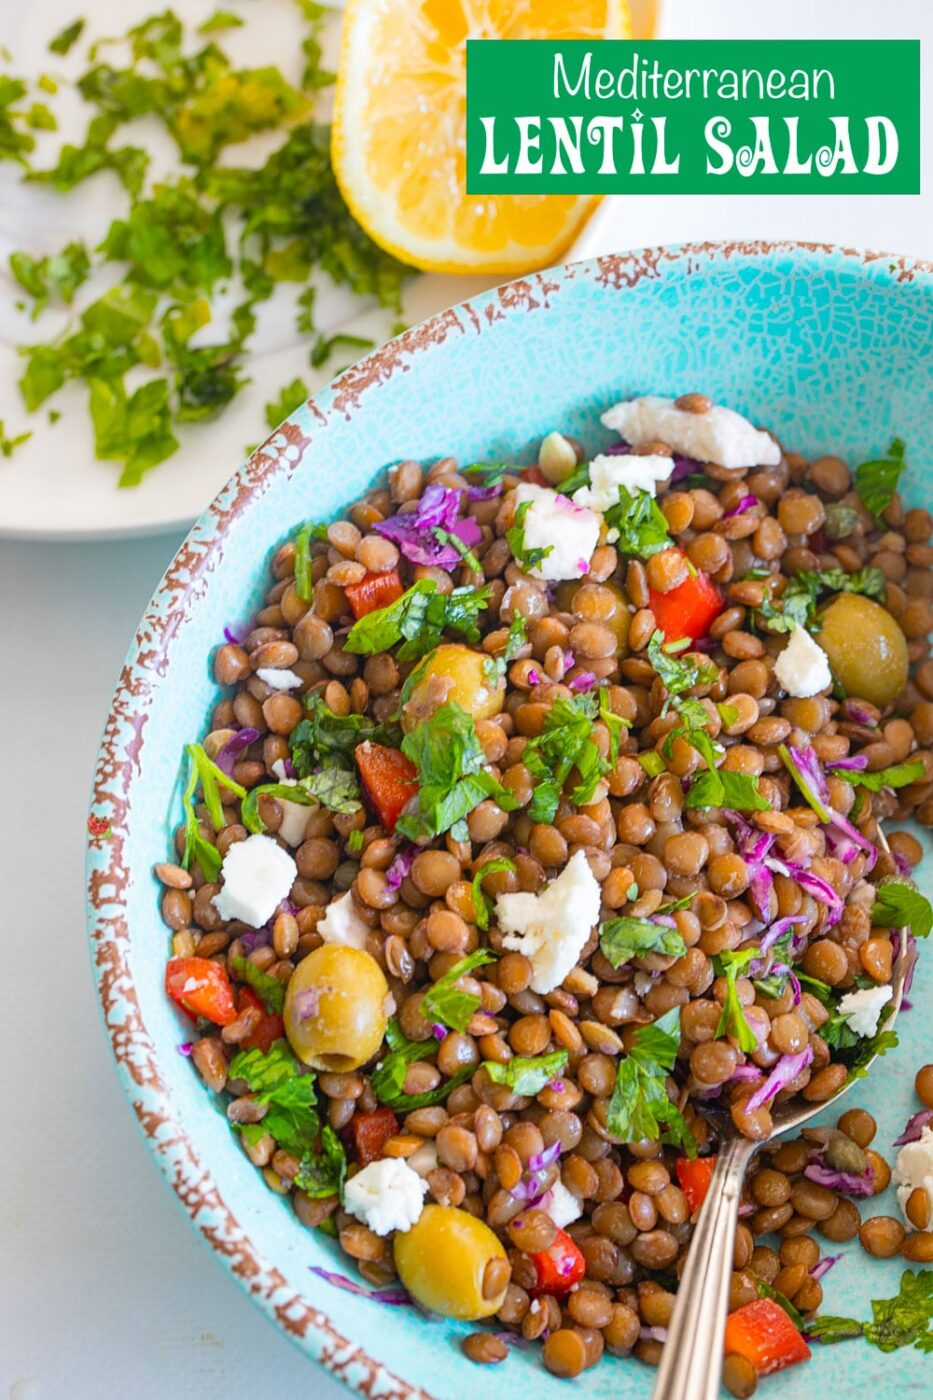 Top view of lentil salad in a light blue bowl with a spoon next to it